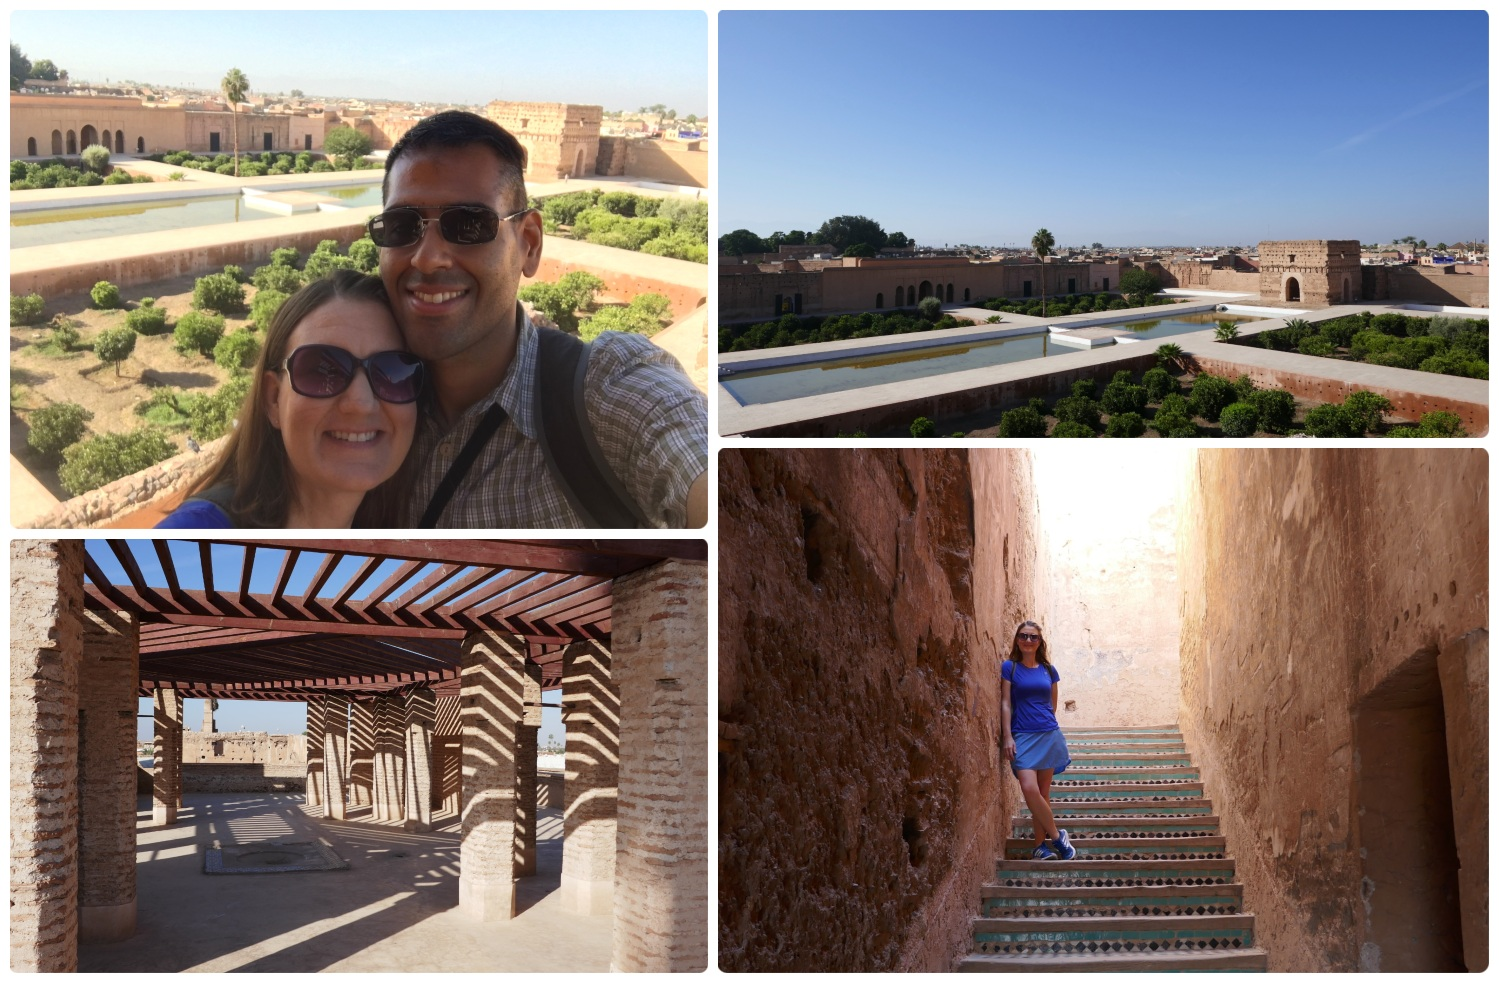 El Badi Palace in the Medina (Old Town), Marrakech, Morocco. Don't miss the rooftop terrace and the stunning views of the palace and the city!